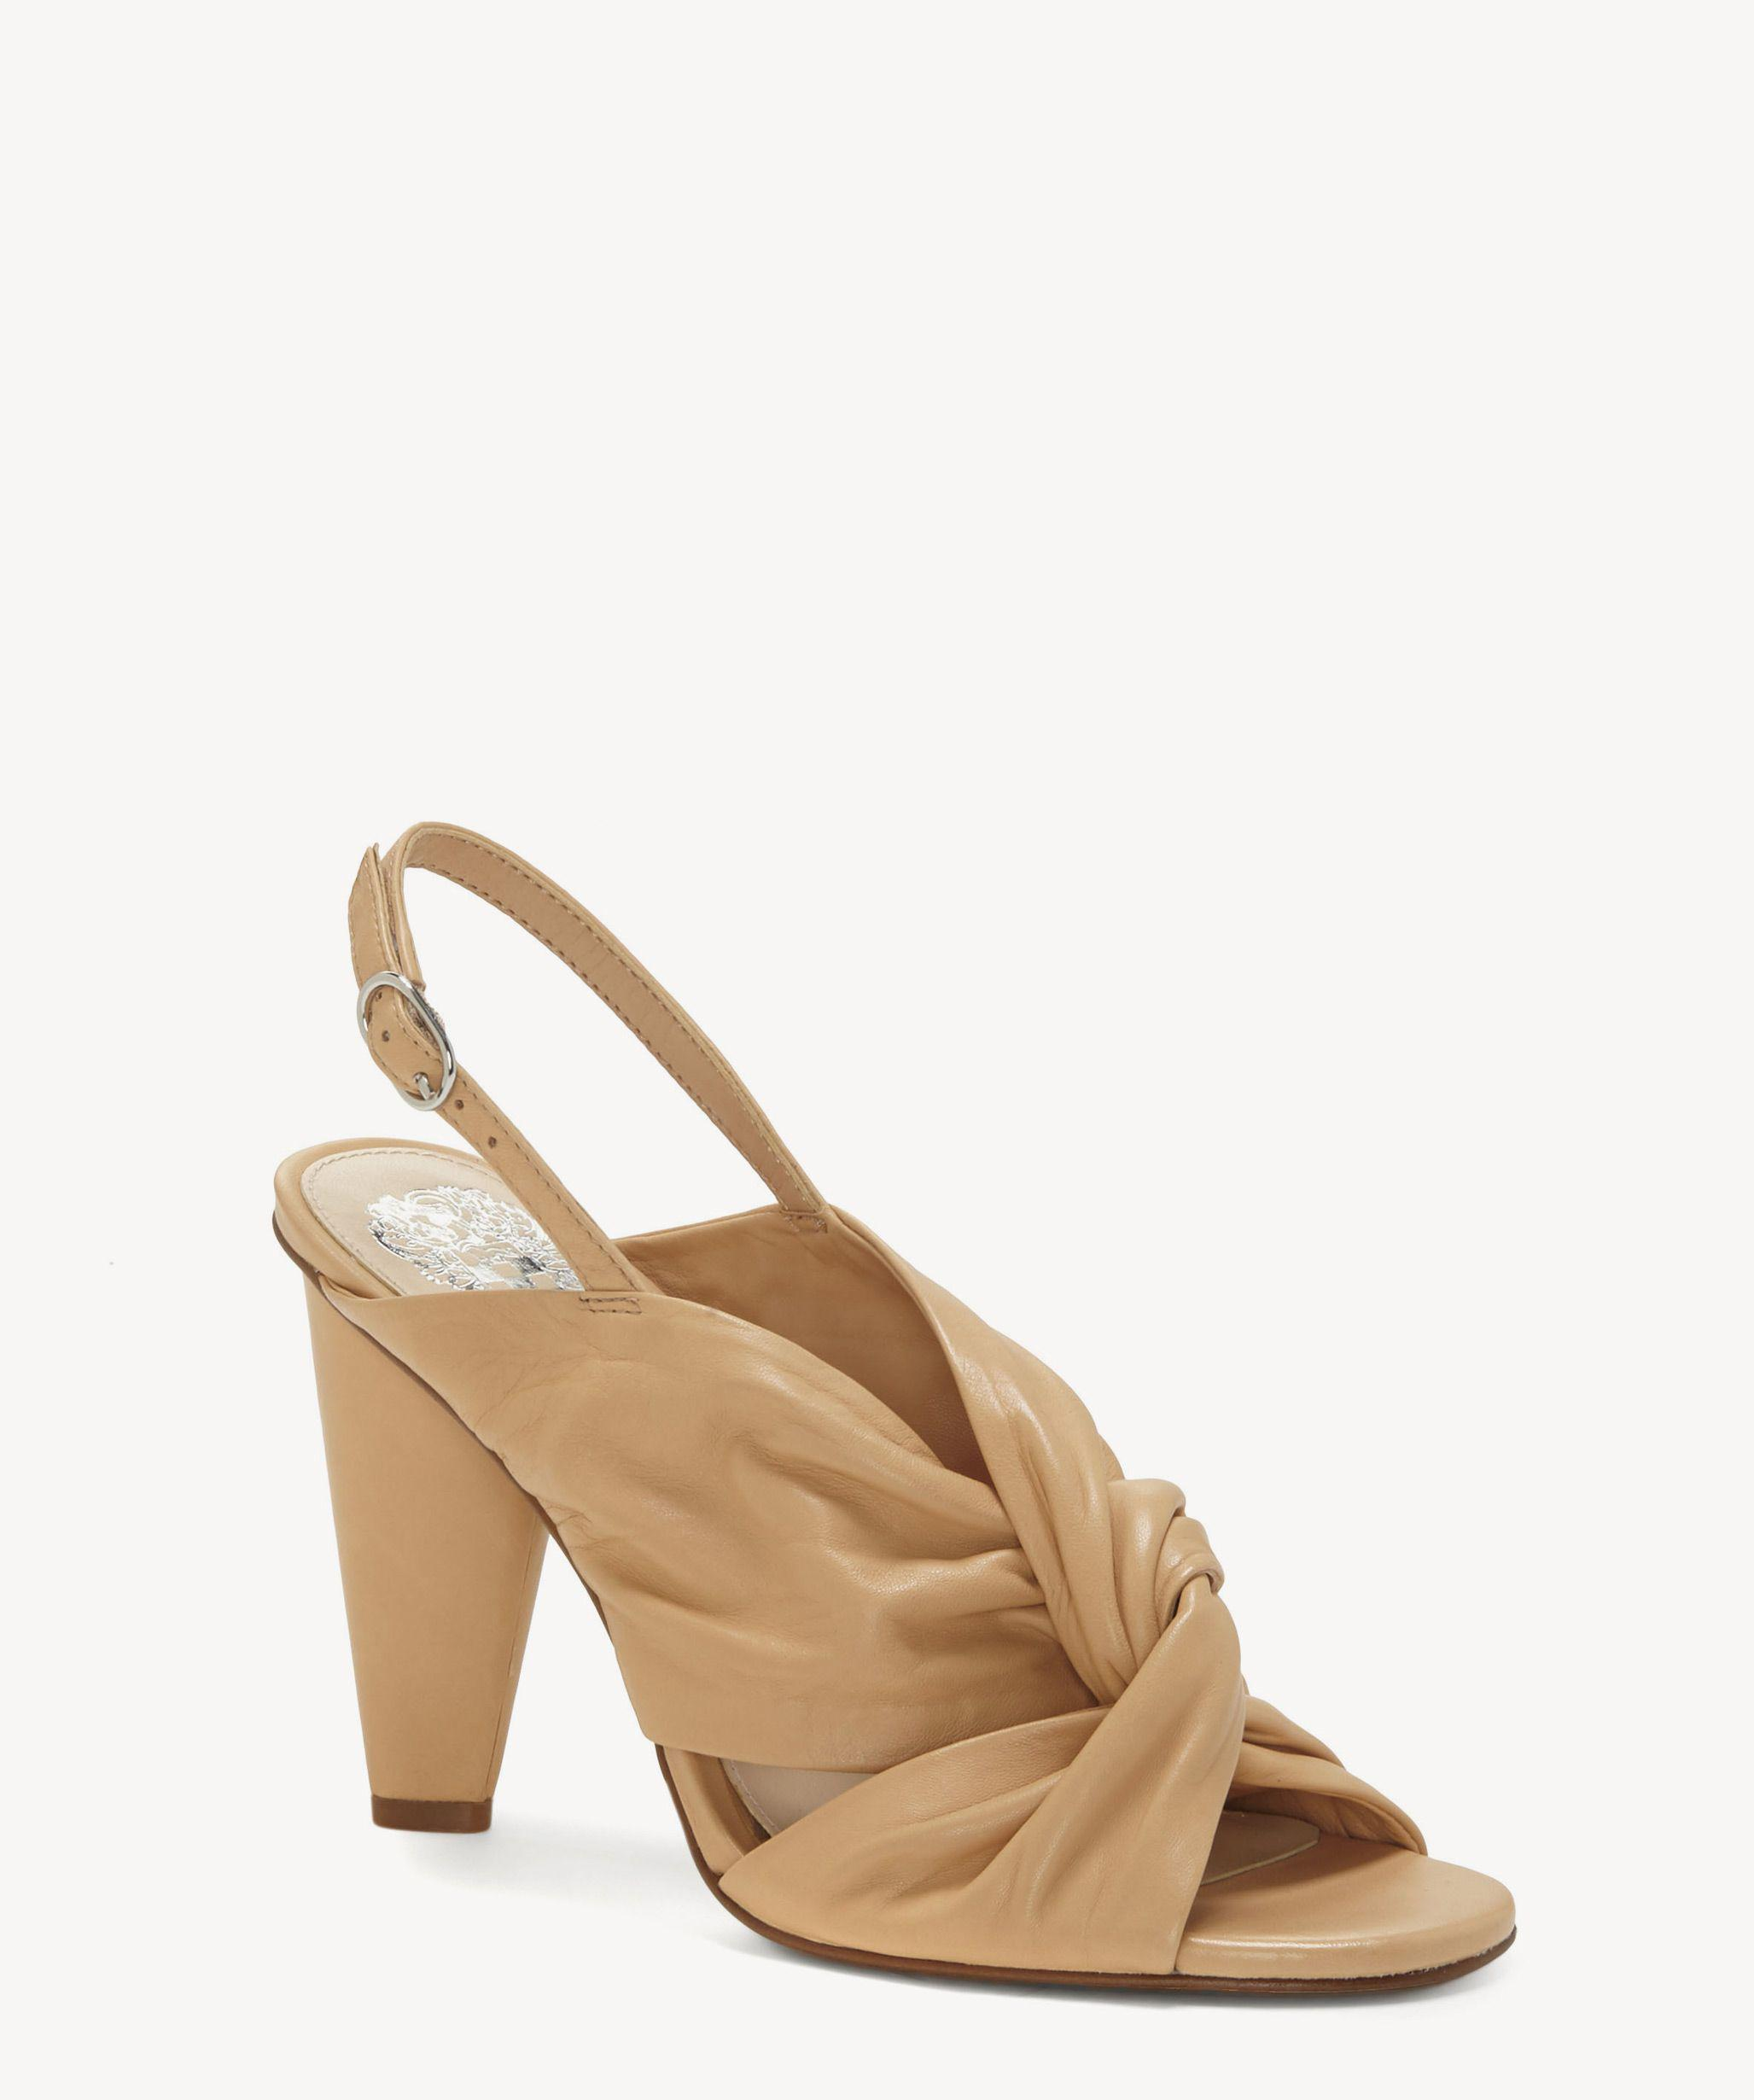 4070edb7439 Lyst - Vince Camuto Kattie Knotted Slingback Sandal in Natural ...